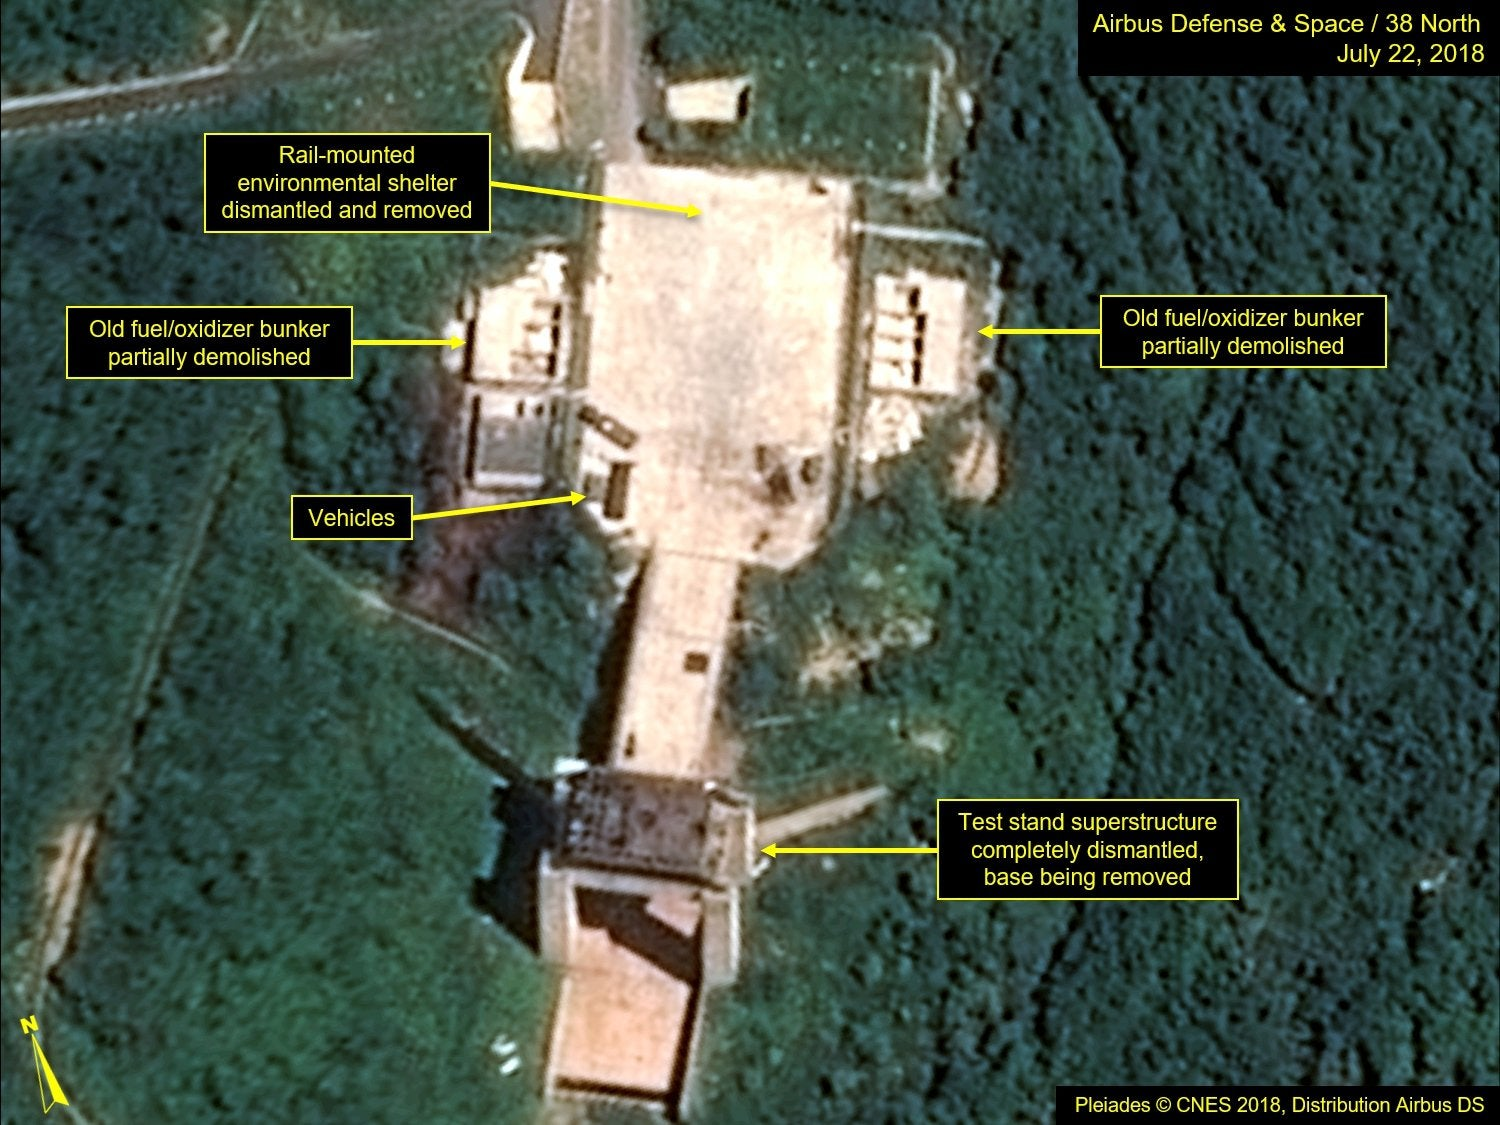 North Korea 'dismantling missile site' in first steps since Trump-Kim summit, satellite images suggest